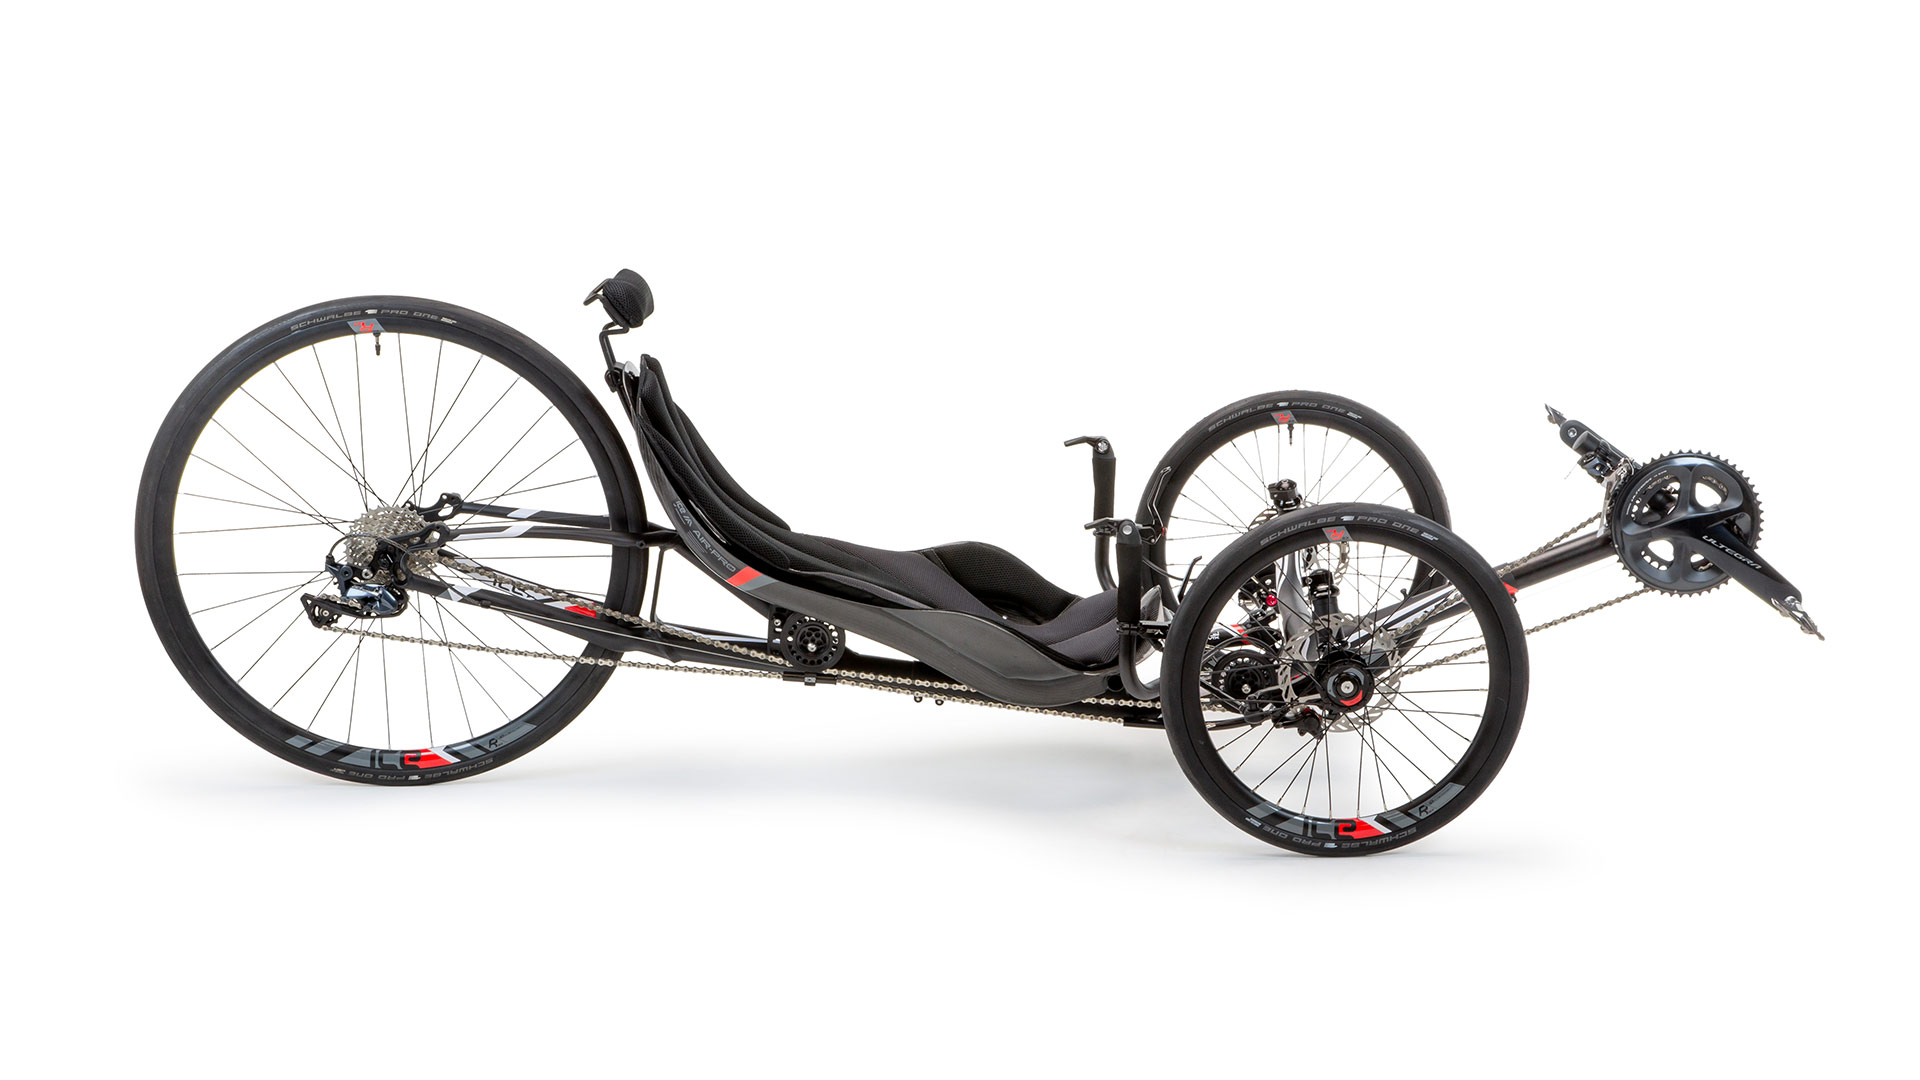 ICE VTX - Sporty Fast Recumbent Racing Trike, Bike